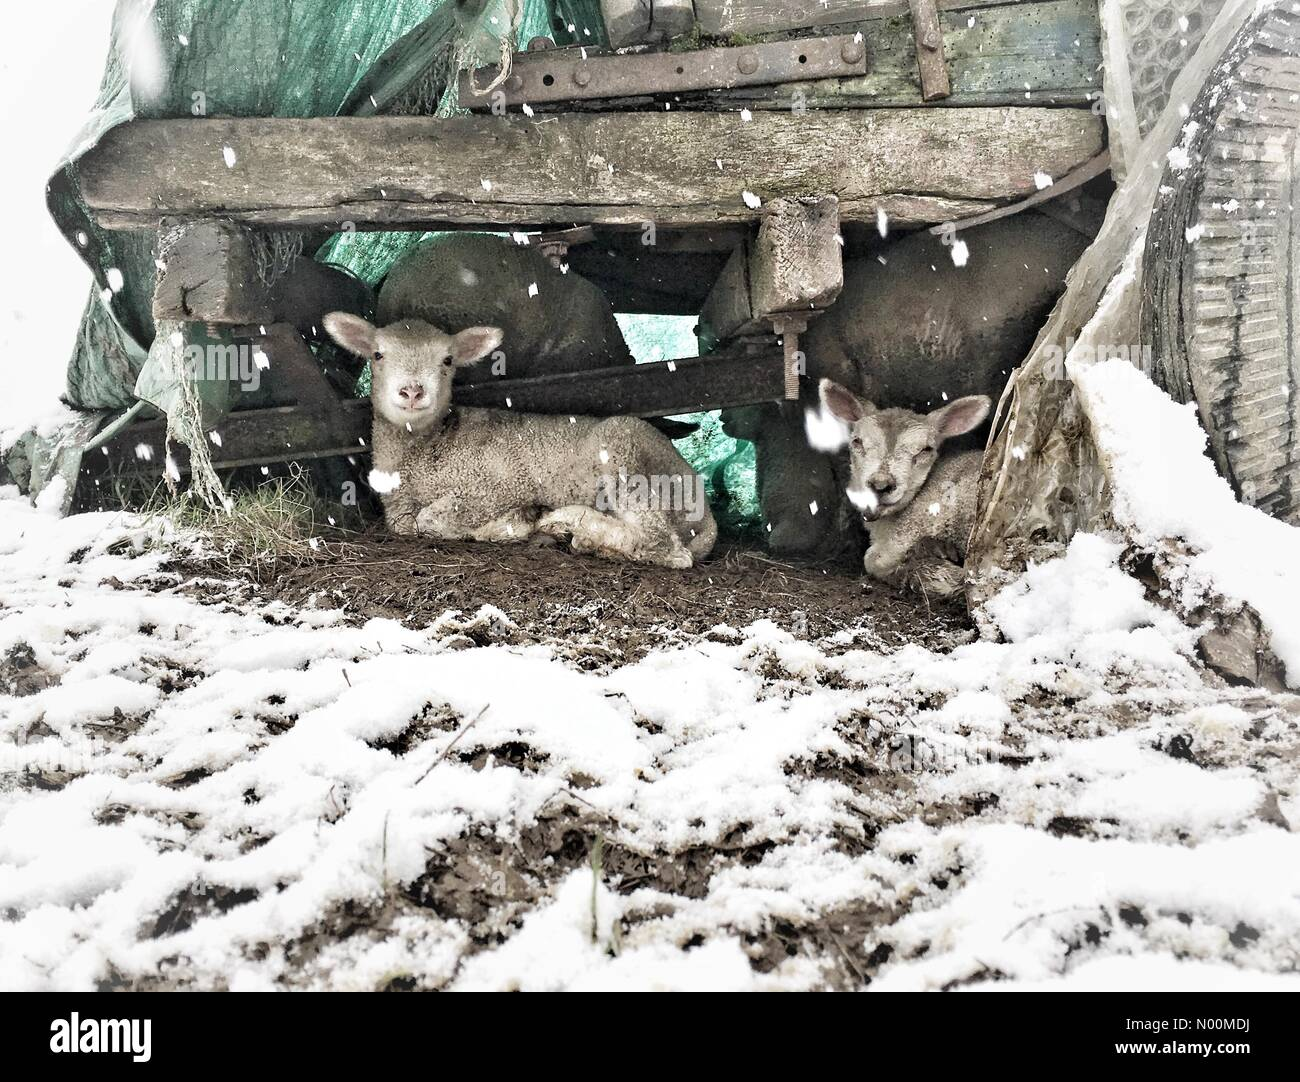 Exeter, UK. 18th Mar, 2018. UK Weather: Lambs shelter from snow in Dunsford, Devon Credit: nidpor/StockimoNews/Alamy - Stock Image